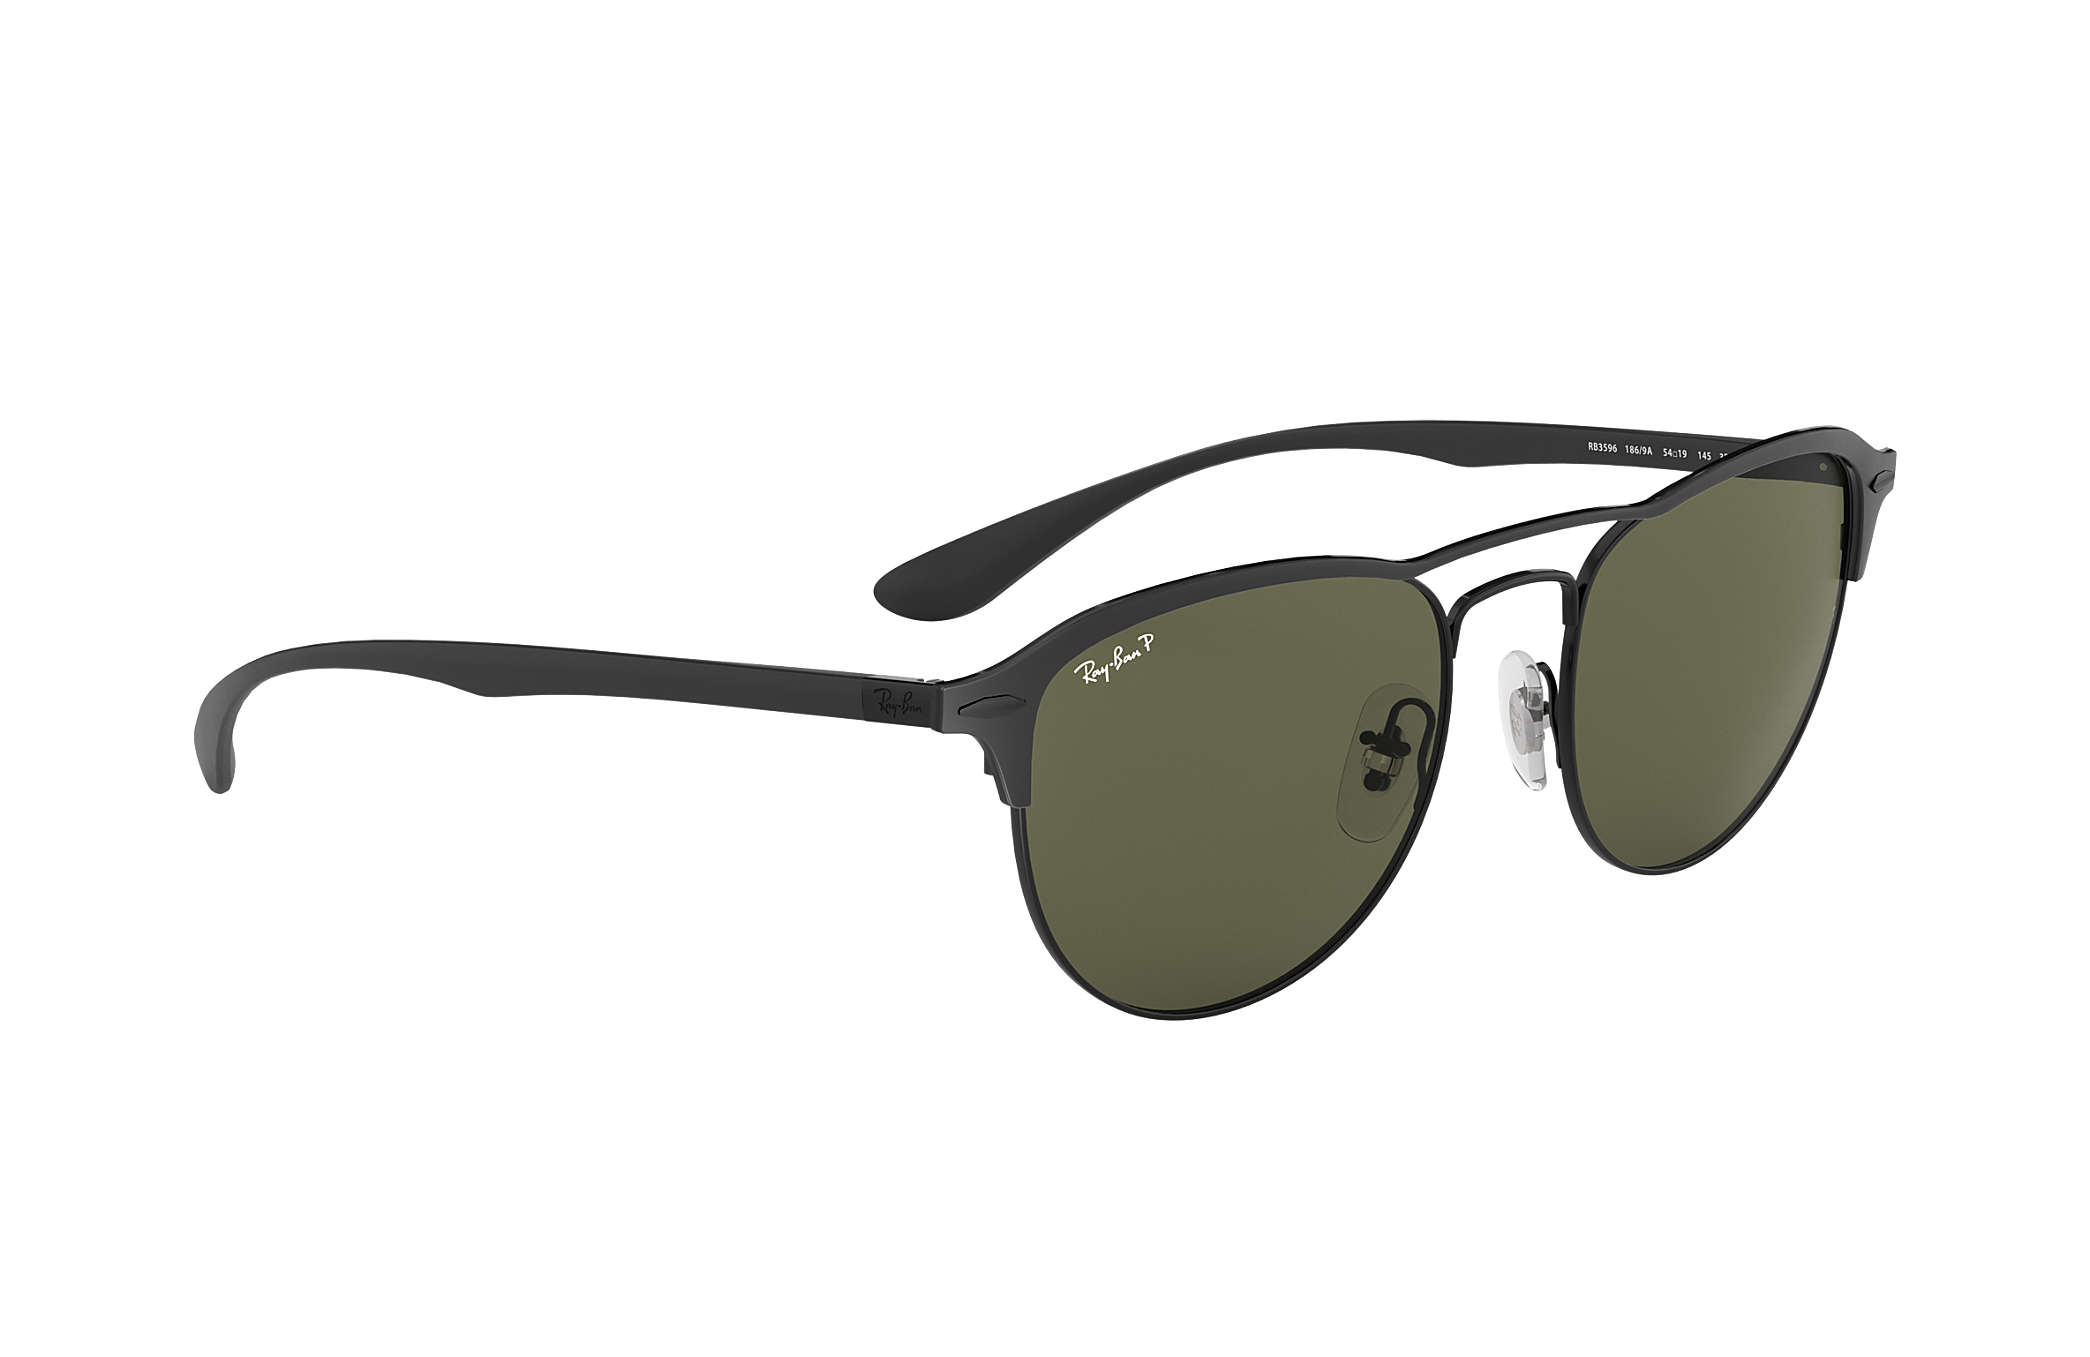 ef1edb1541 Ray-Ban RB3596 Black - Peek - Green Polarized Lenses - 0RB3596186 ...